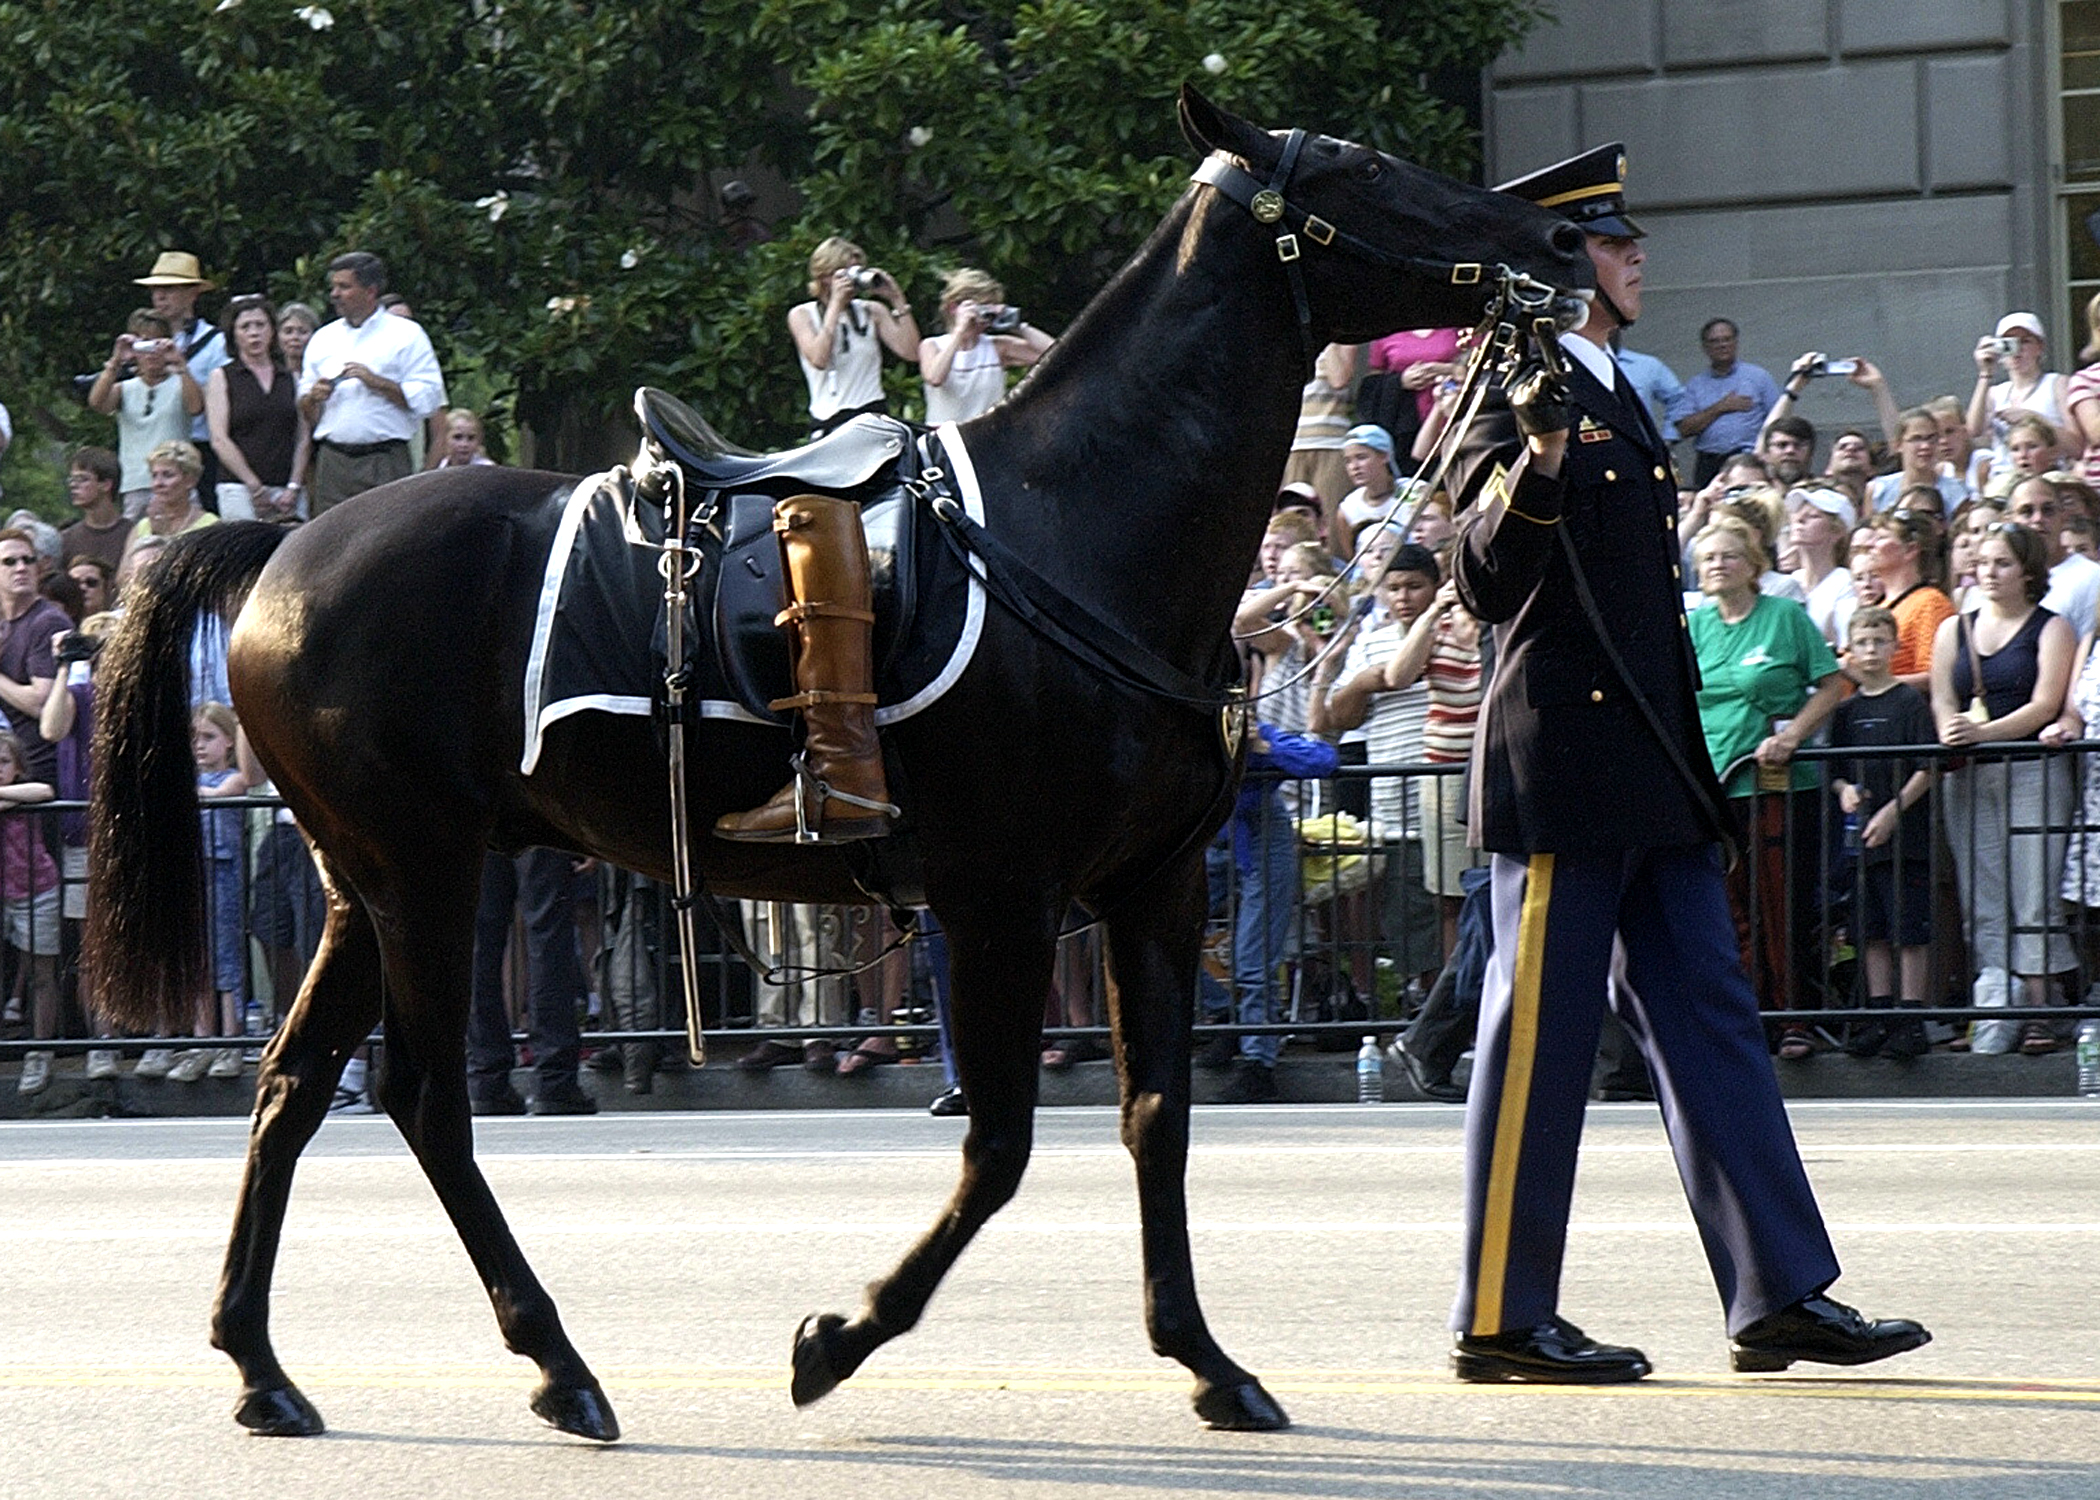 Symbolic of a fallen leader who will never ride again, the Caparisoned horse is led down Constitution Ave., following the Caisson carrying the body of former U.S. President Ronald Reagan during his procession to the Capitol Rotunda. U.S. Navy photo by Photographer's Mate 2nd Class Aaron Peterson (RELEASED). 040609-N-5471P-013 Washington, D.C. (Jun. 9, 2004)